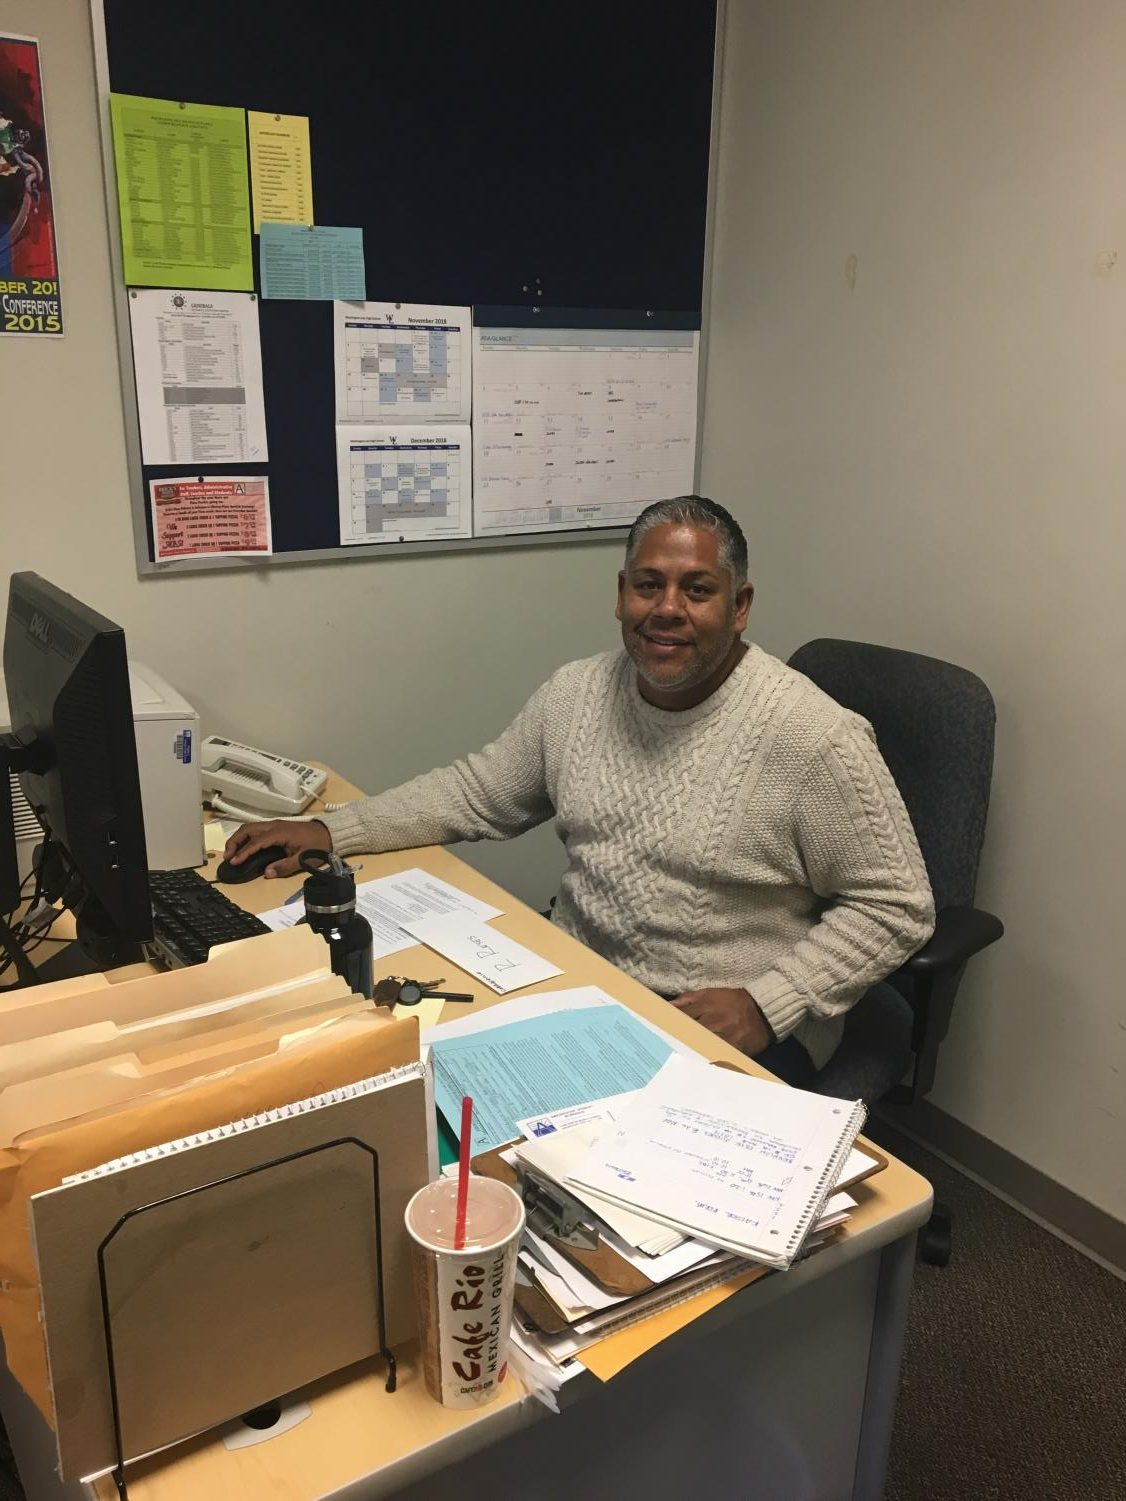 Mr. Jimmy Carrasquillo, the school's Hispanic Family Liaison, works with spanish speaking students to translate and work with them to make their time at the school better.